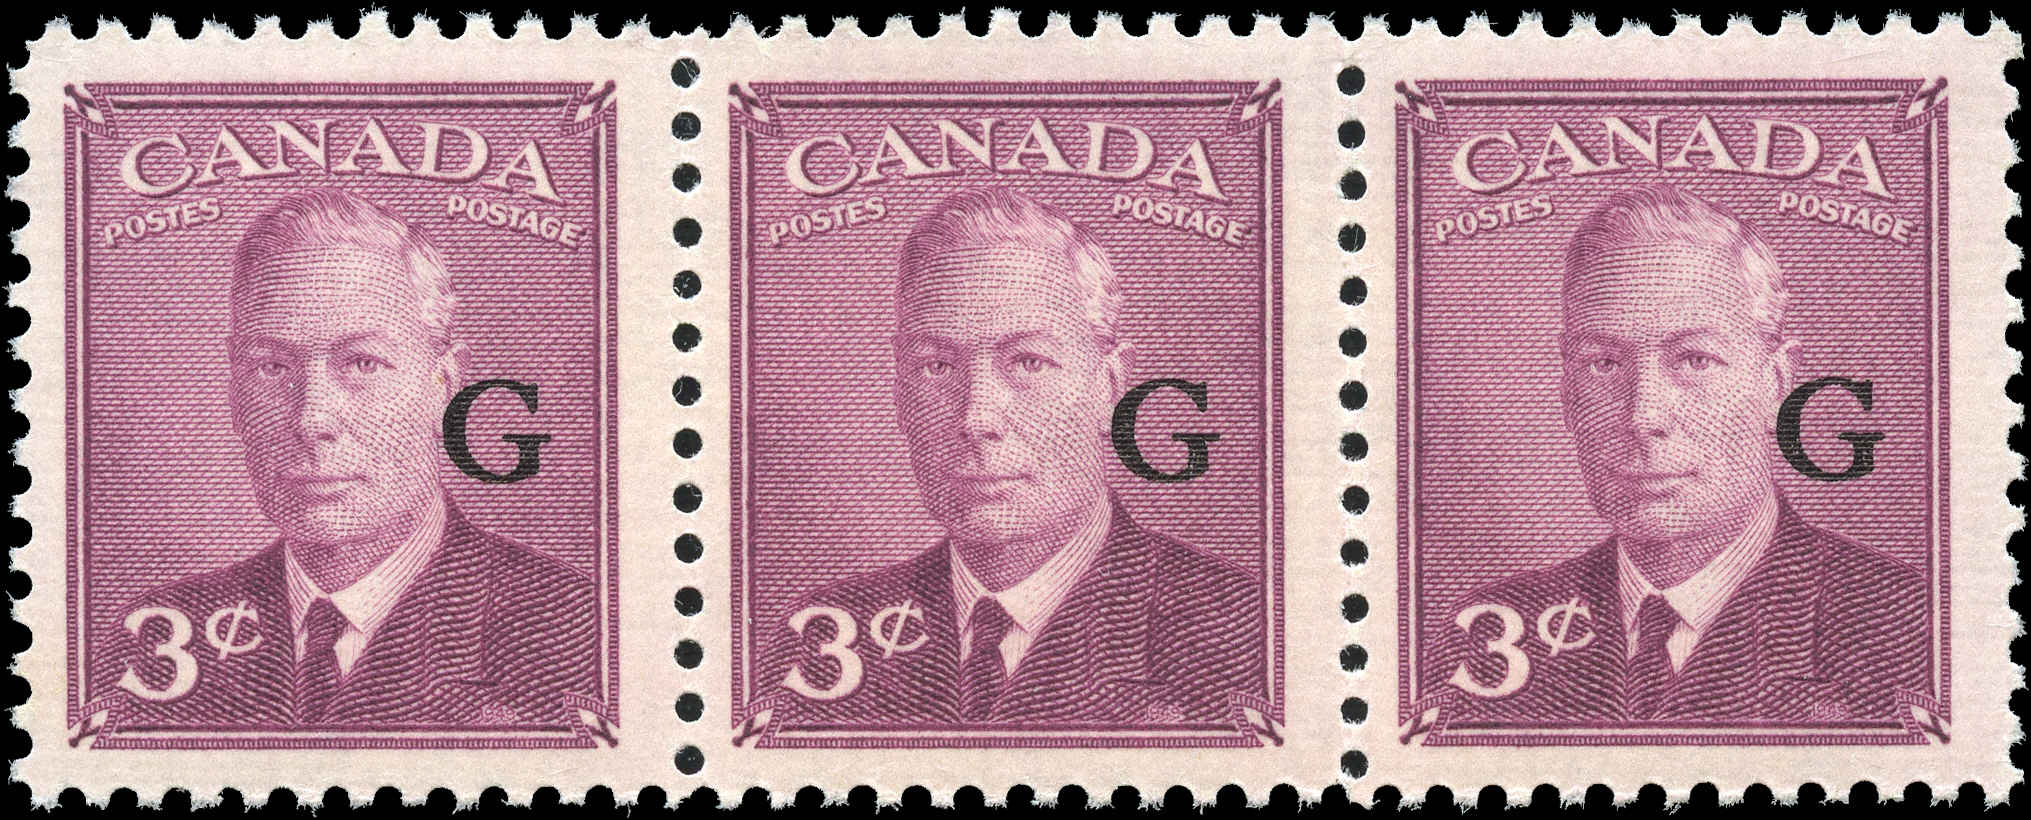 Canada #O18, Official Stamp, F-VF, MNH